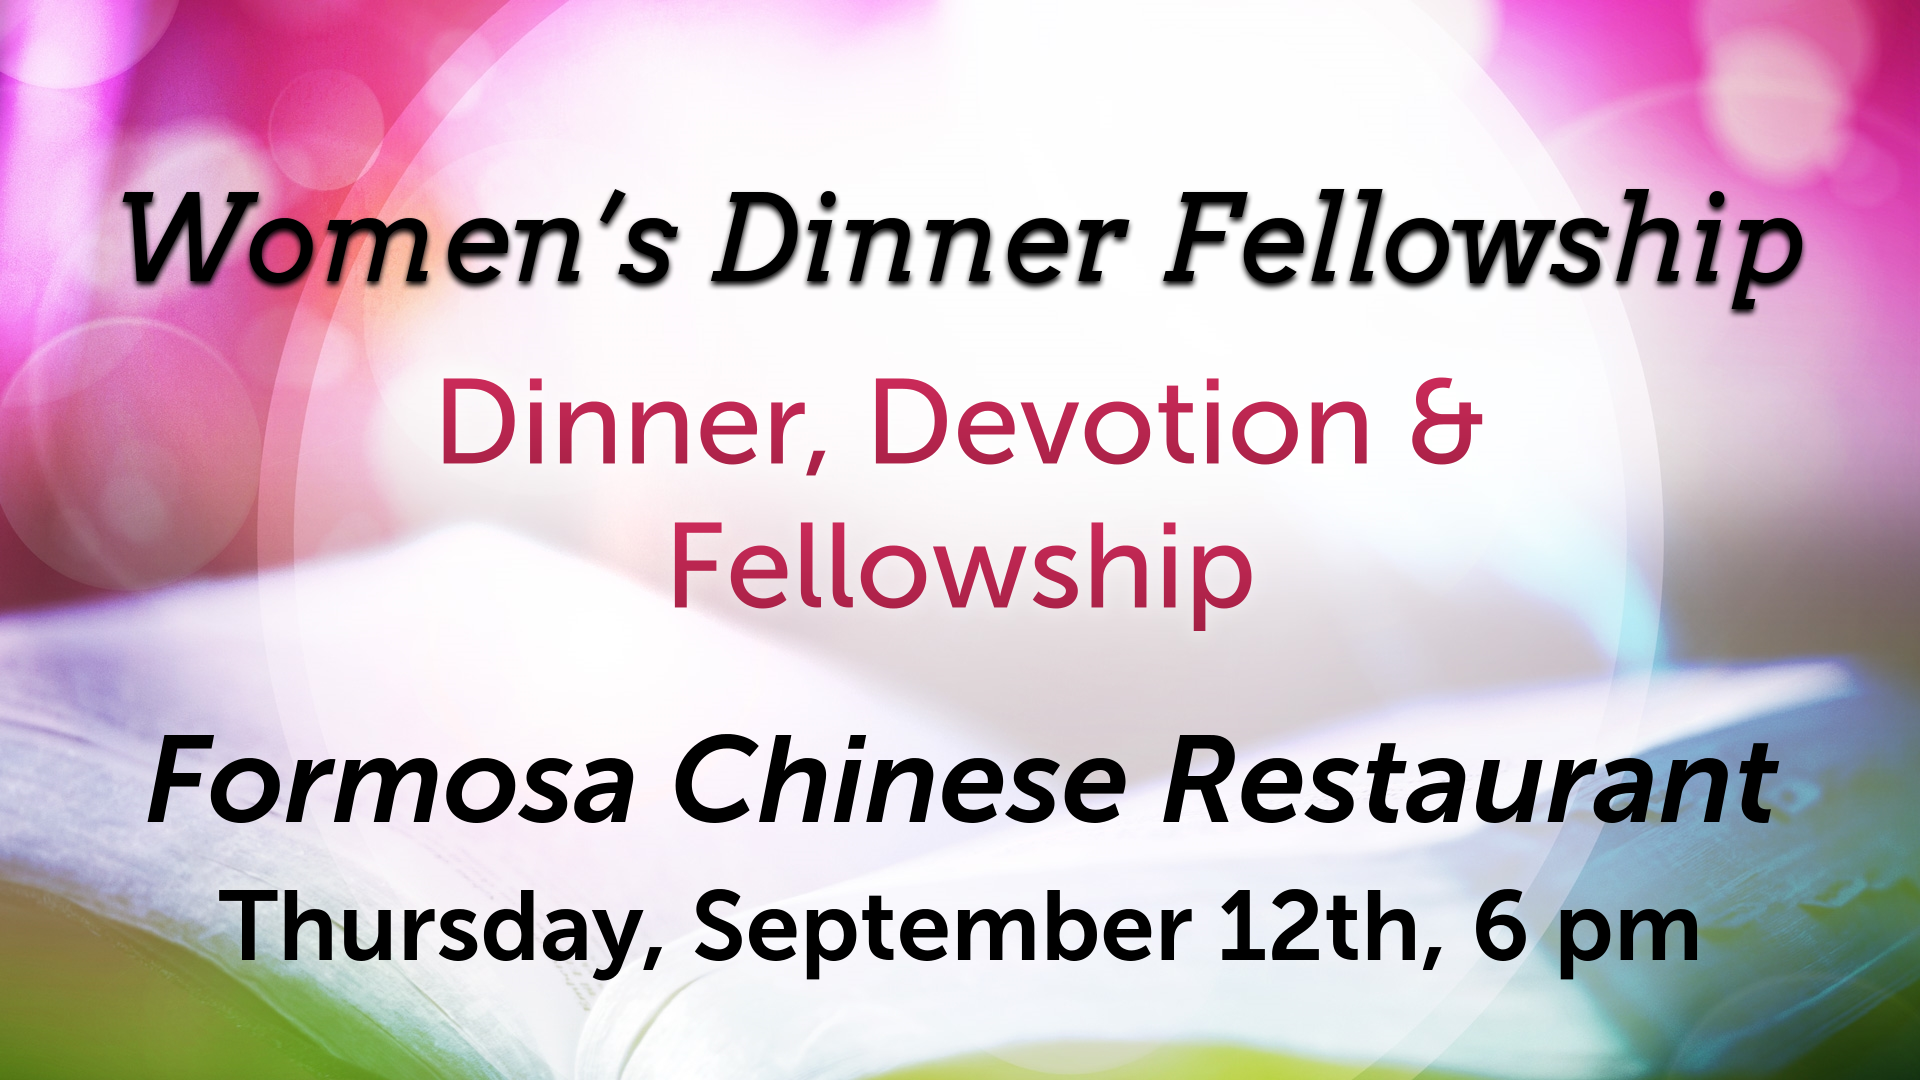 Women's Dinner Fellowship